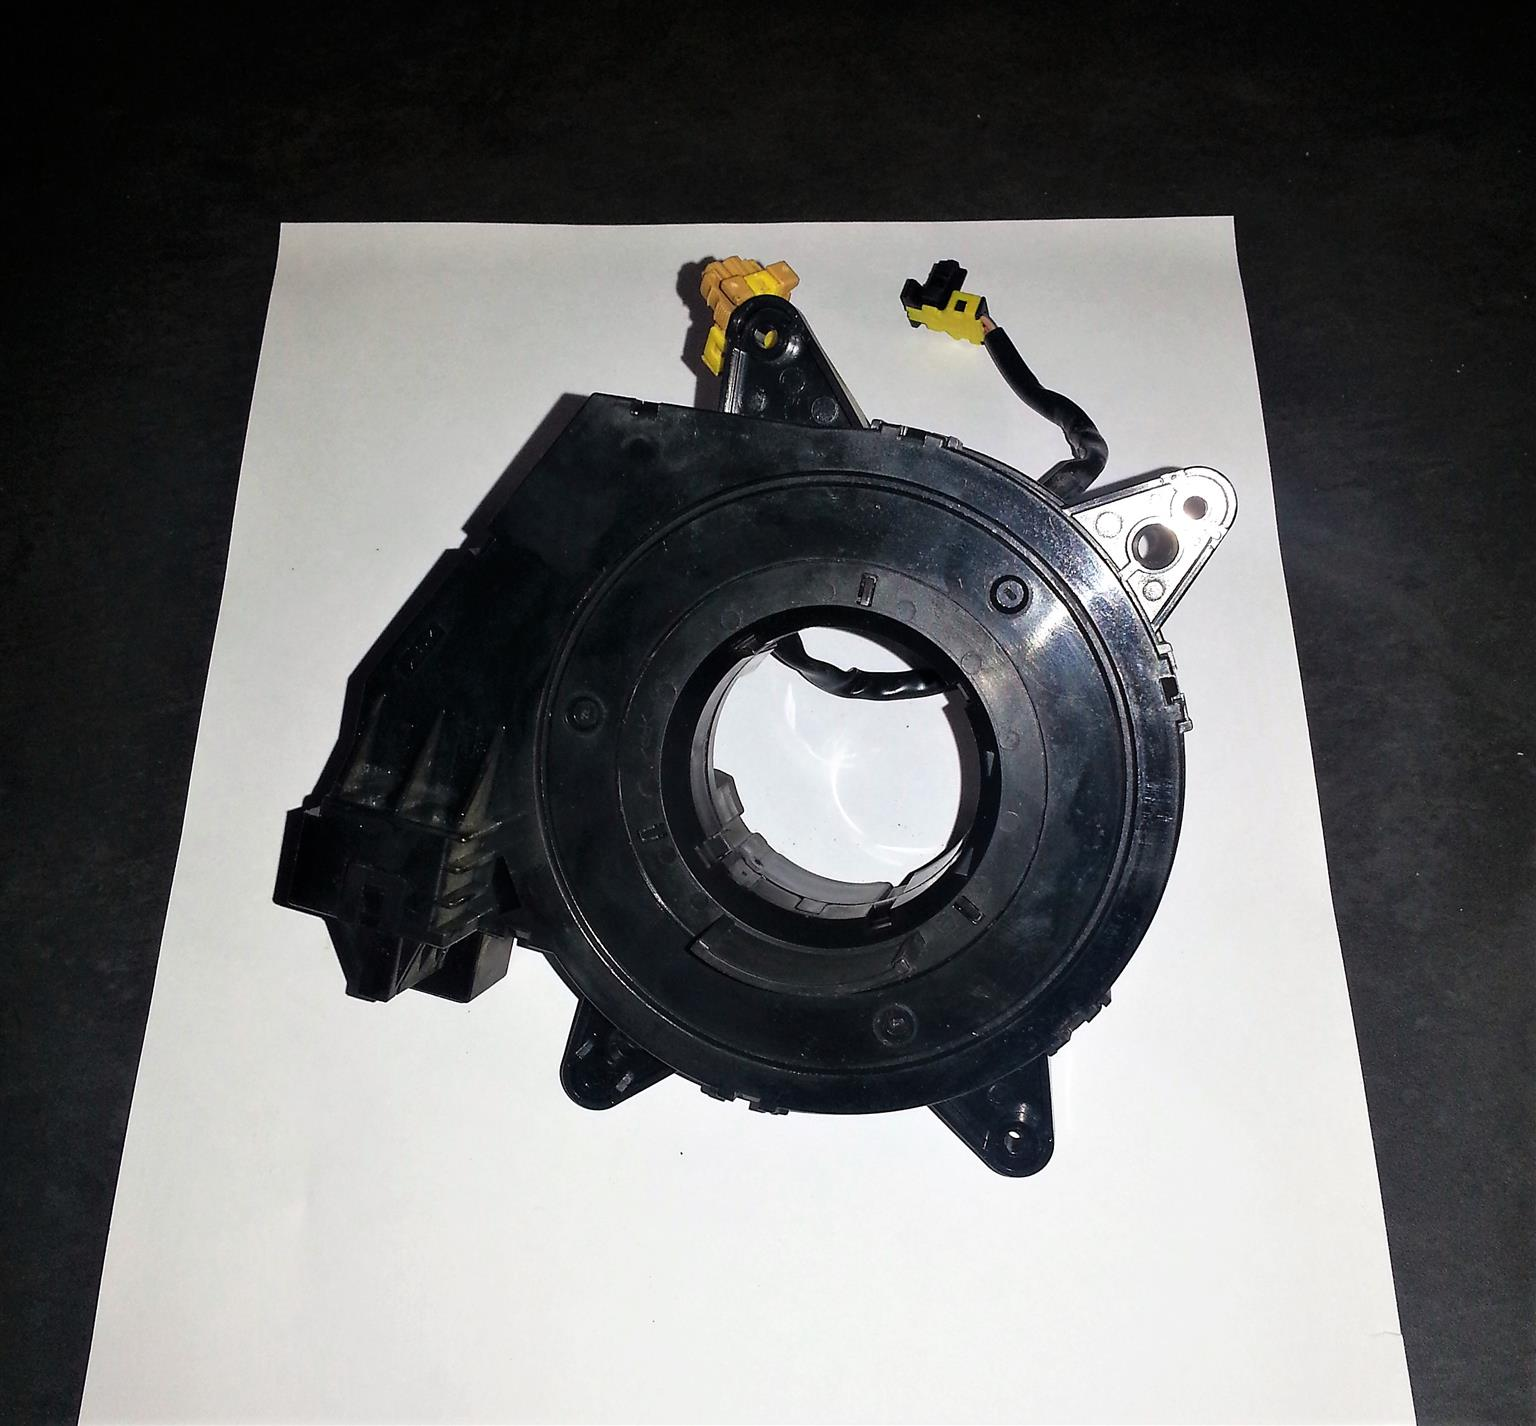 Slip-rings for Land Rover Discovery 3/4 & Range Rover Sport FOR SALE